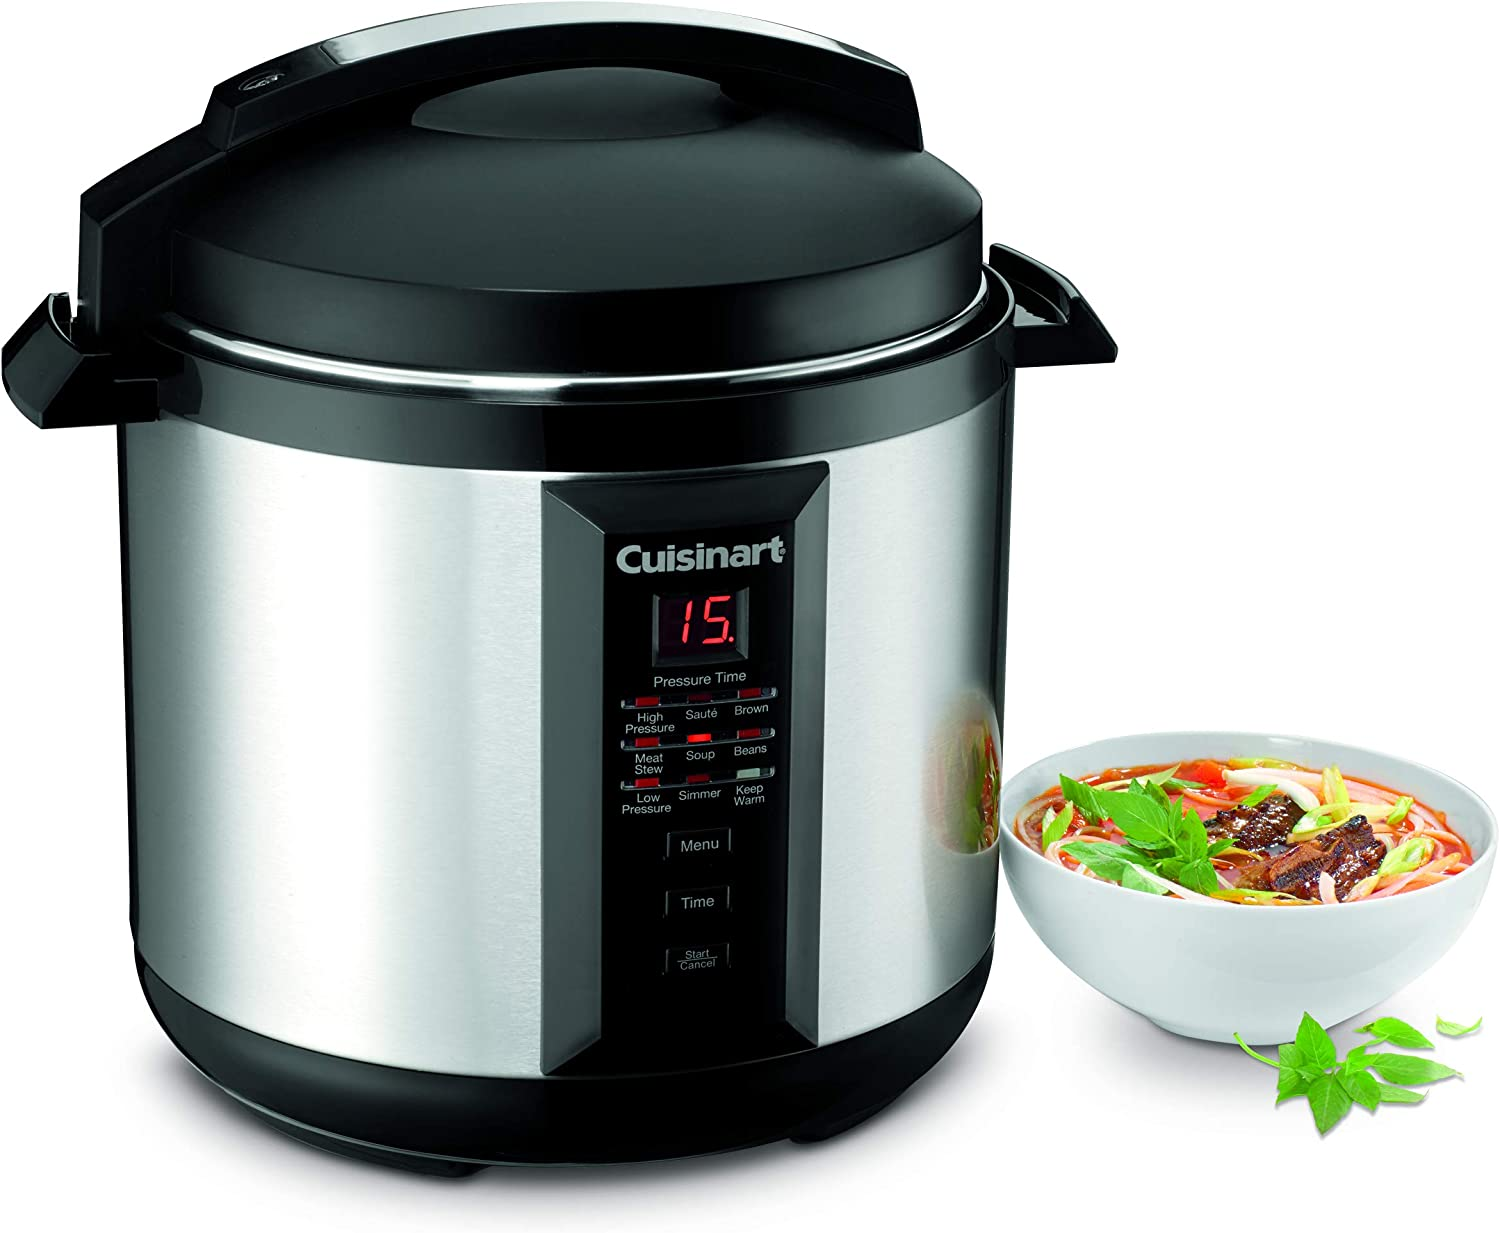 Small pressure cookers